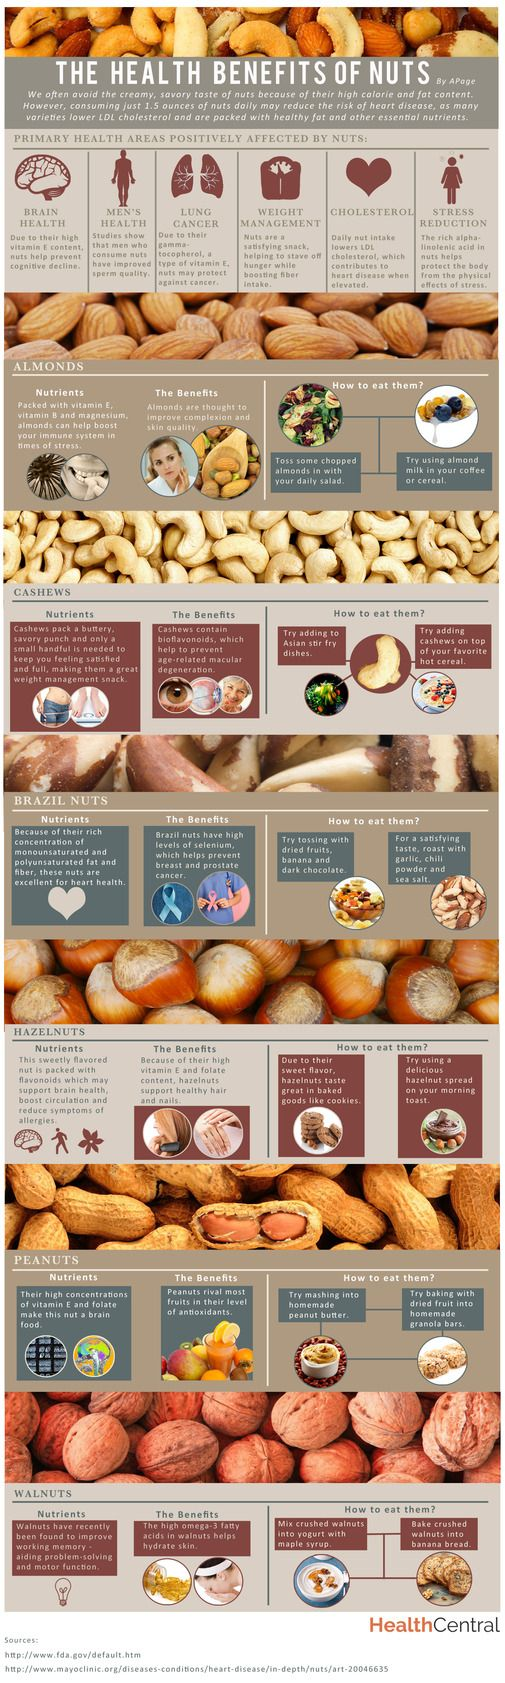 Check out our helpful #infographic on the benefits of eating #nuts! Nuts are an excellent source of protein, essential fats and fiber. #healthfacts